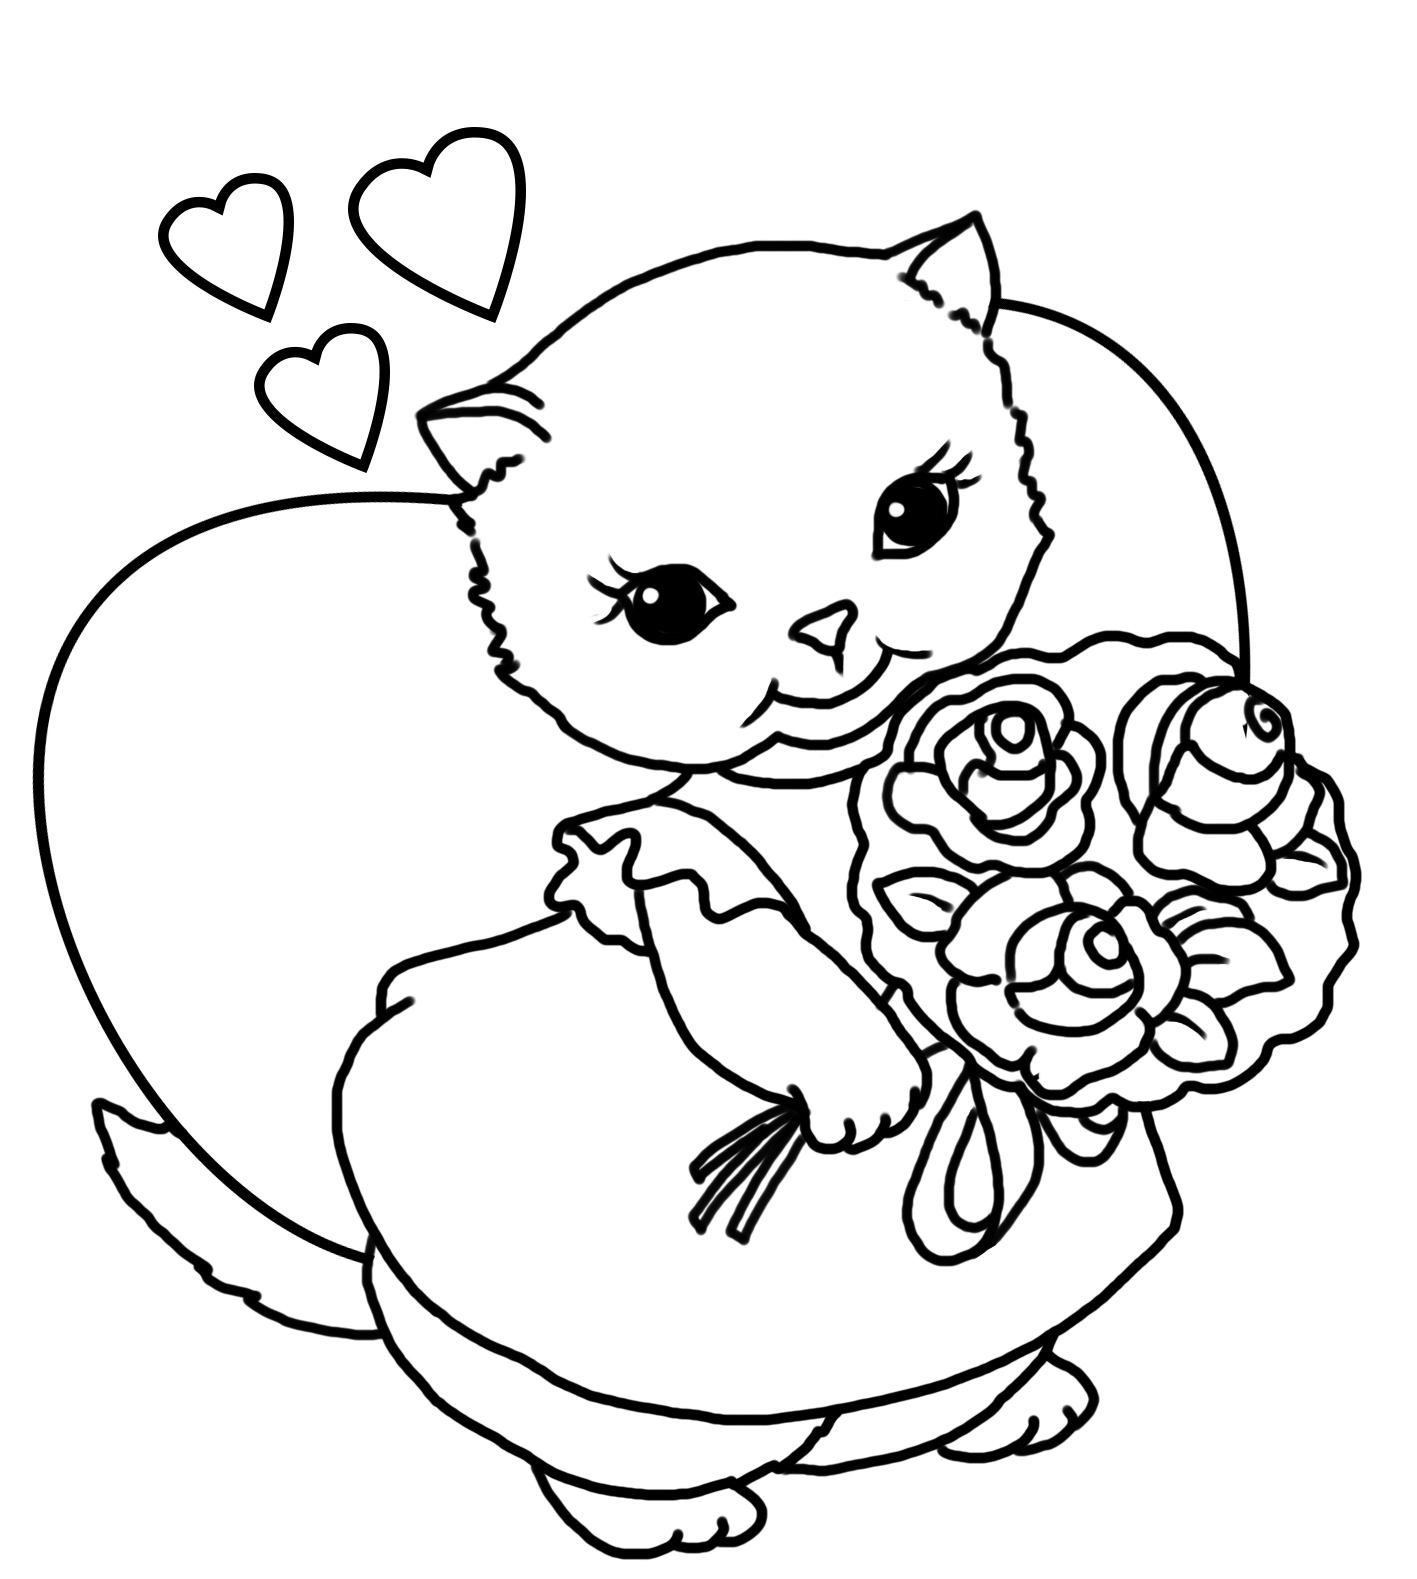 Valentine kitten with roses and hearts